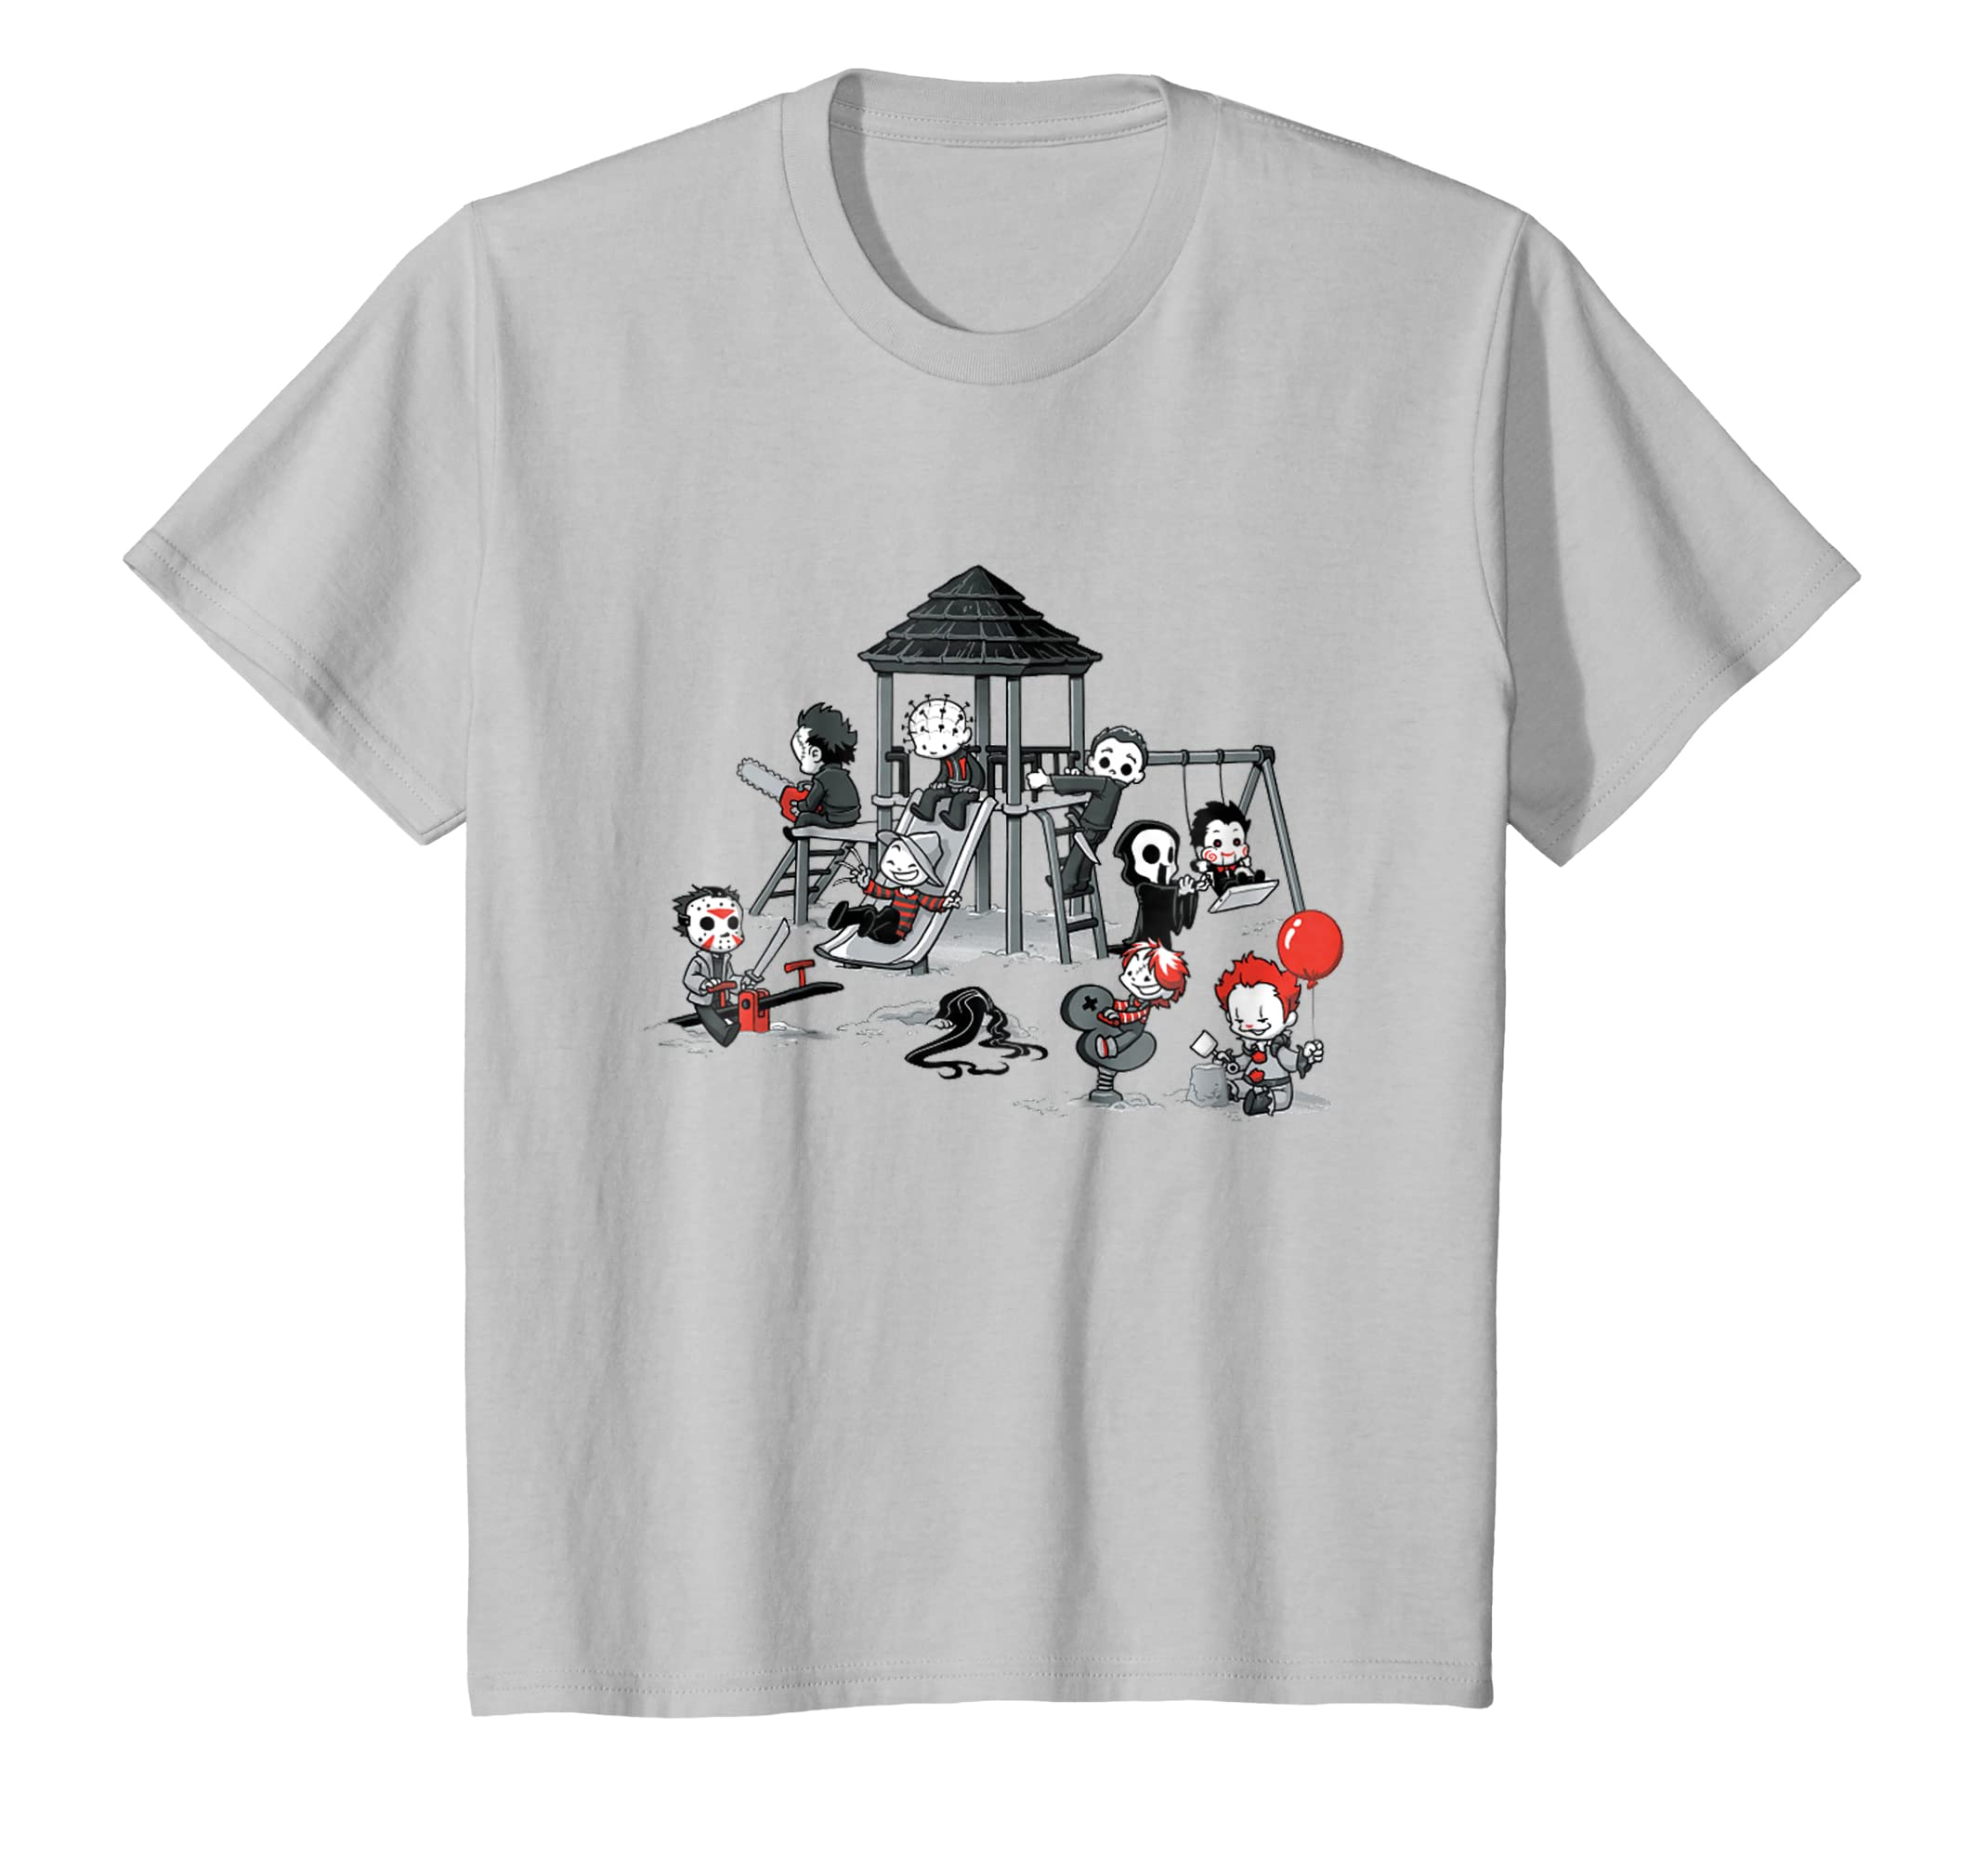 Horror Park Movies Evils Kids Funny Halloween Gift-Bawle